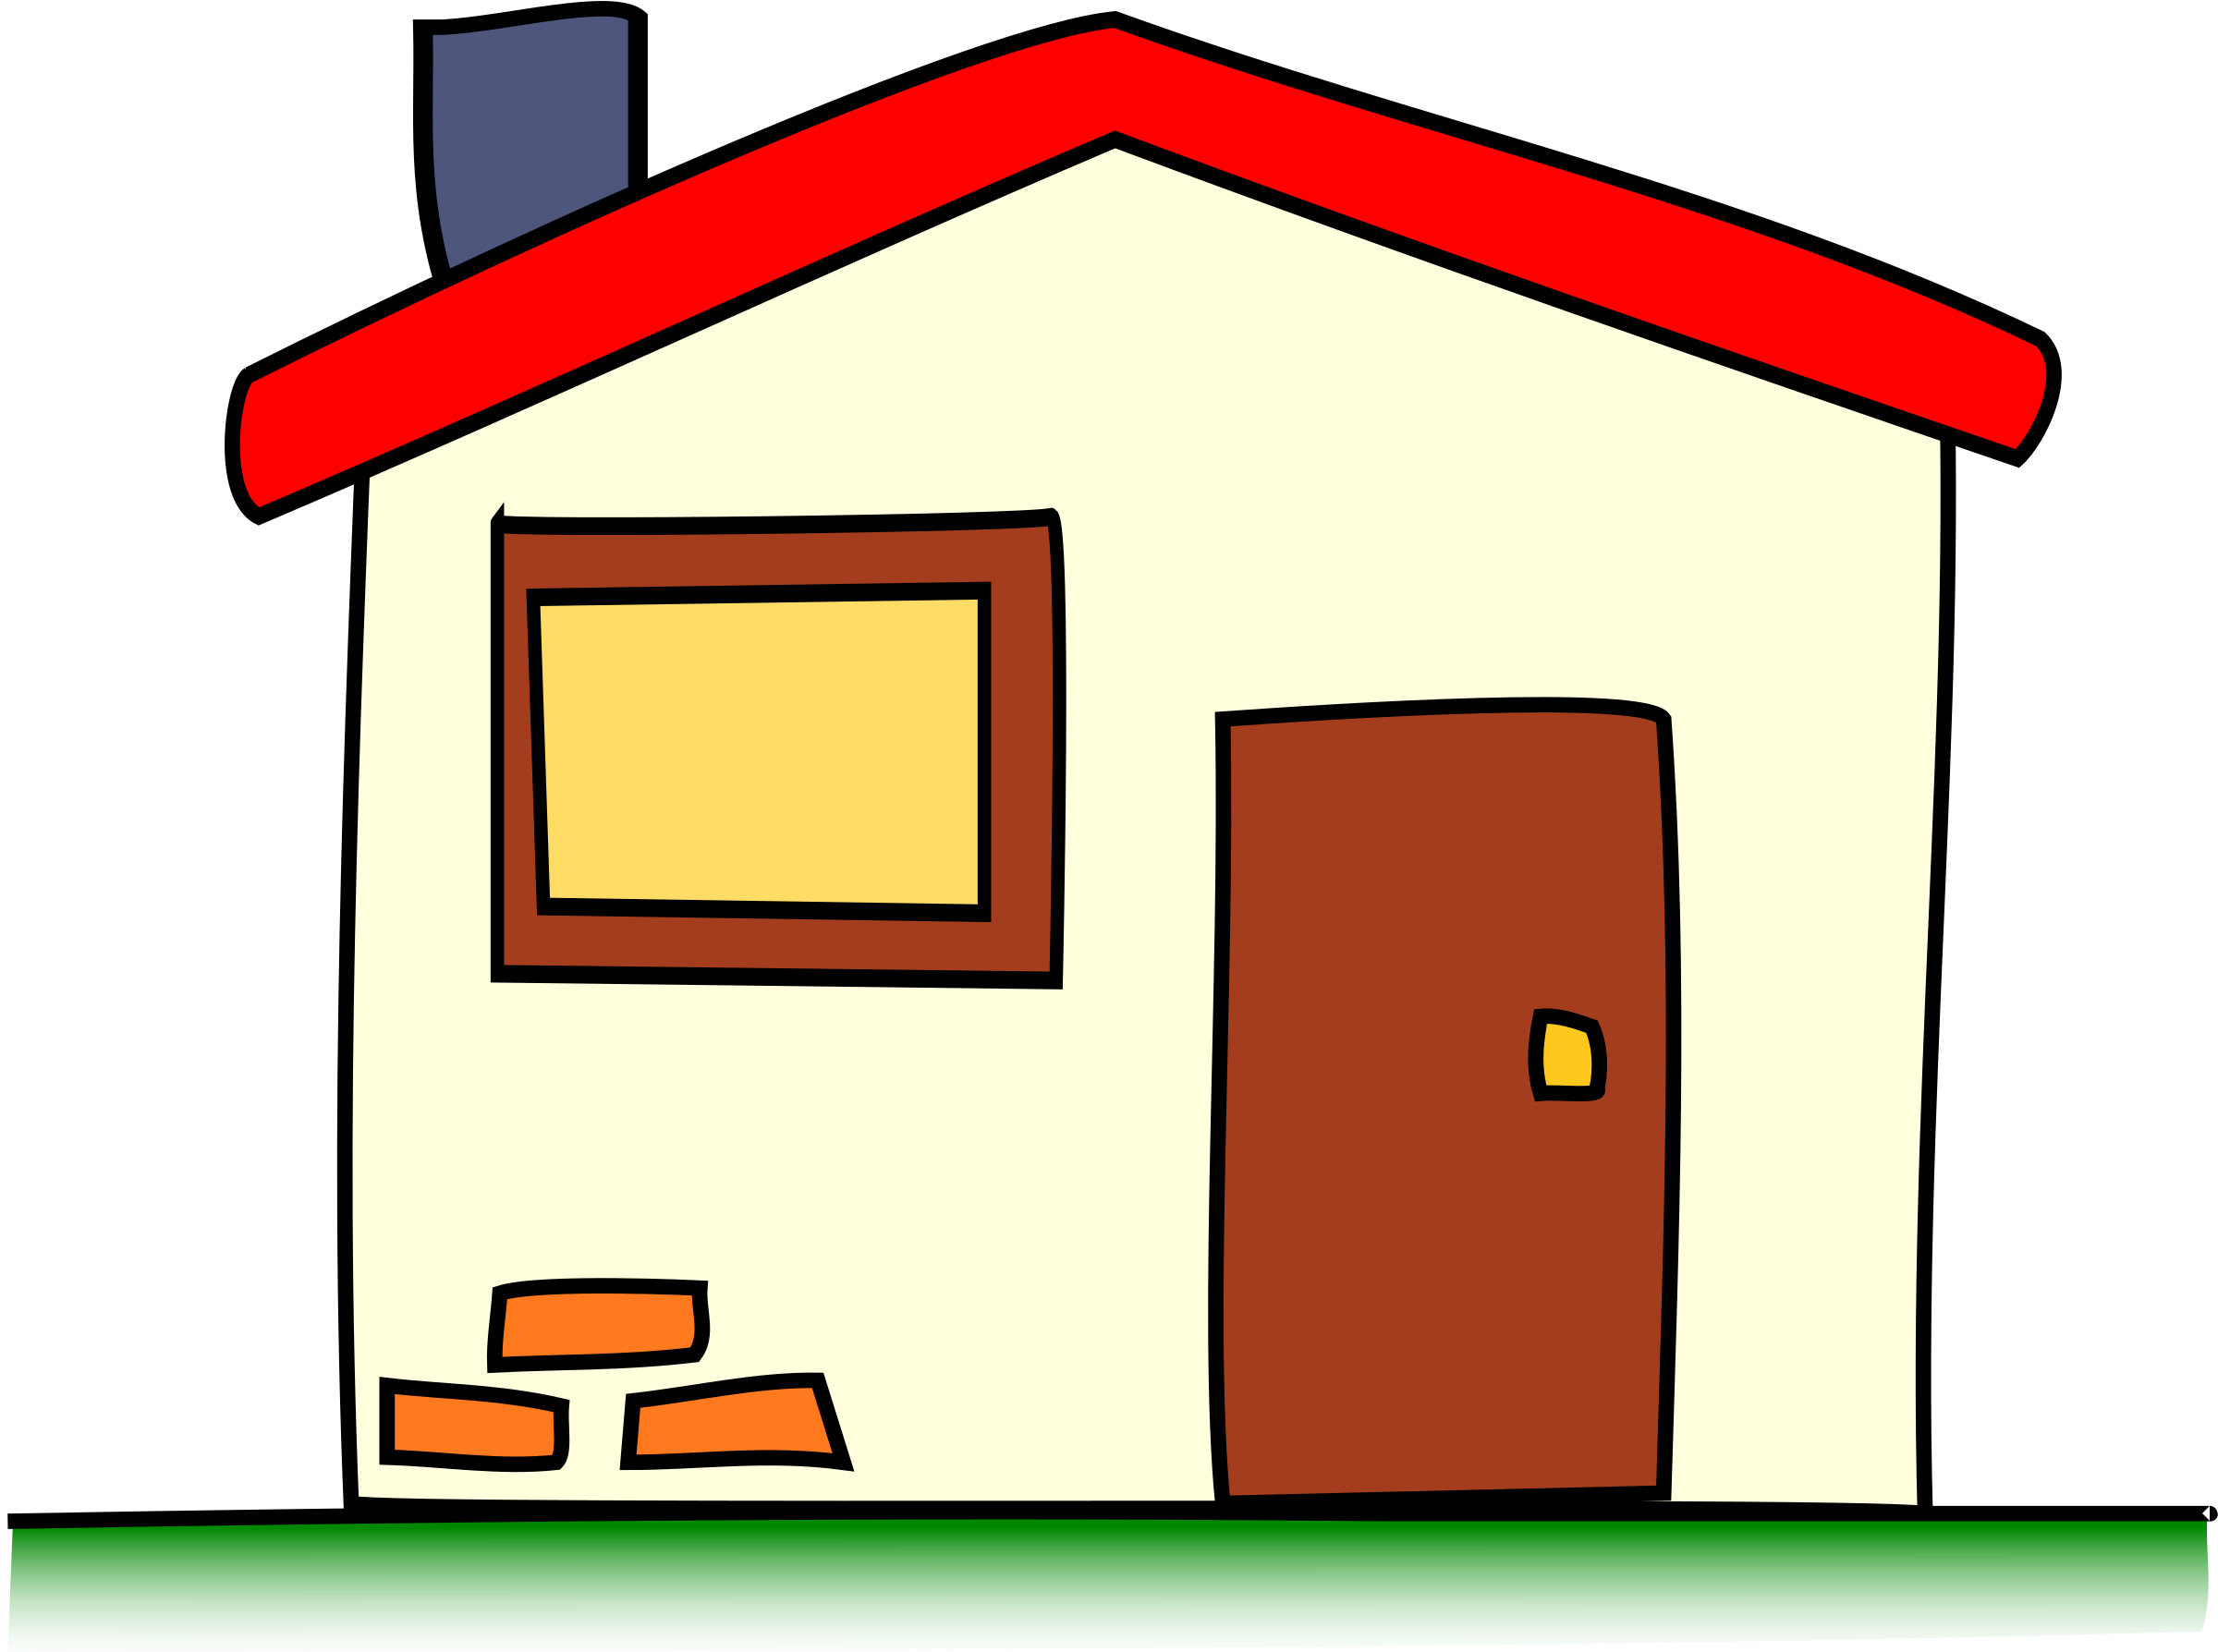 big house clipart at getdrawings com free for personal use big rh getdrawings com house clipart public domain house clipart image